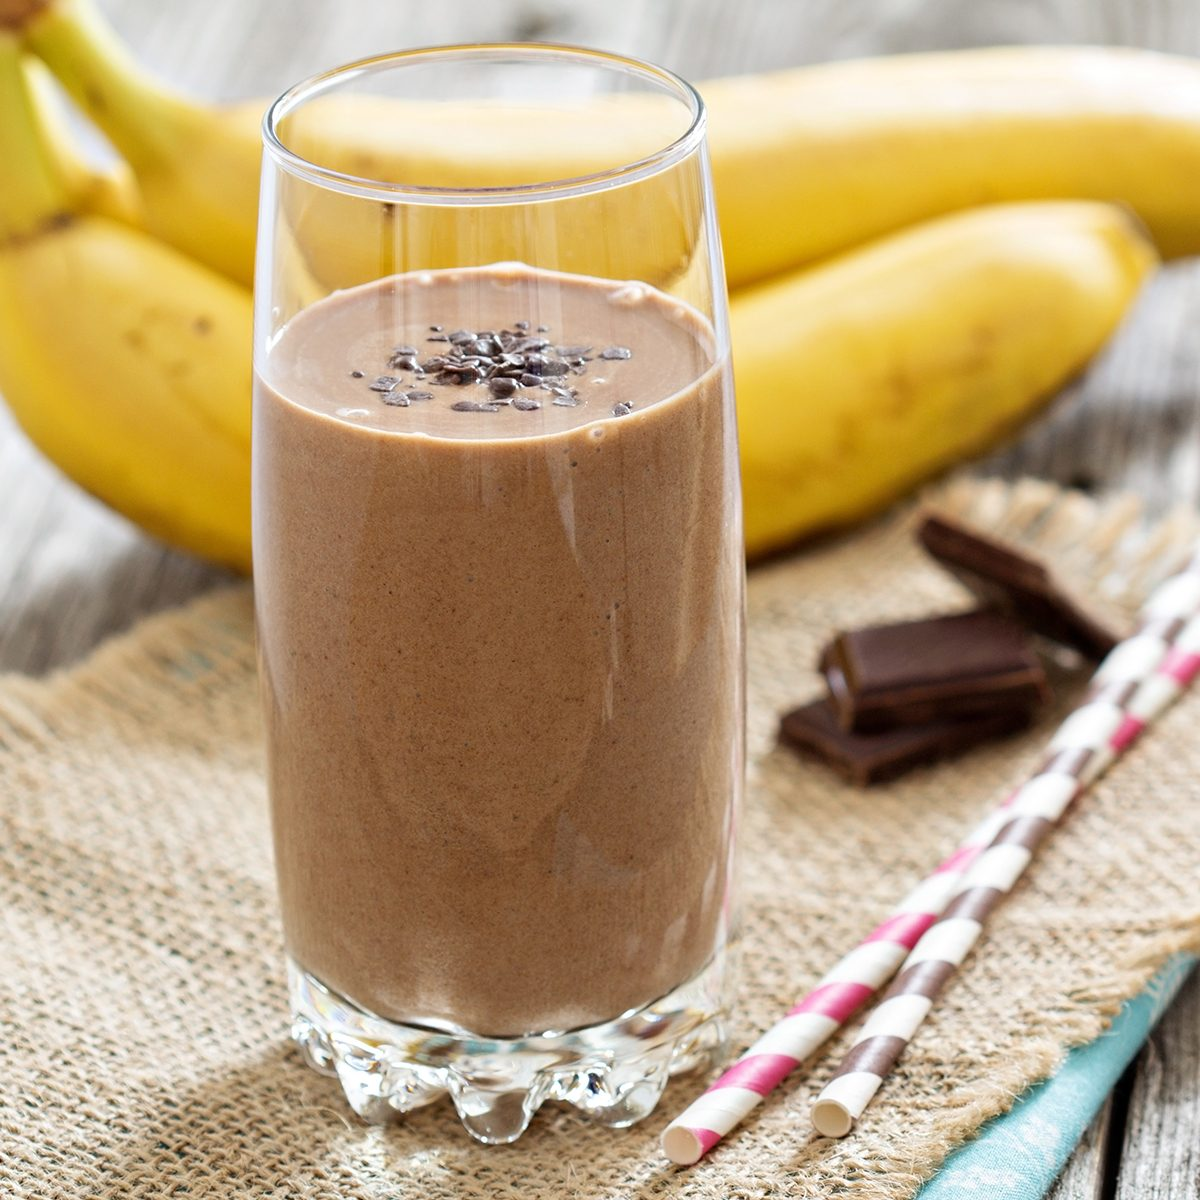 Chocolate banana smoothie in a glass with straws